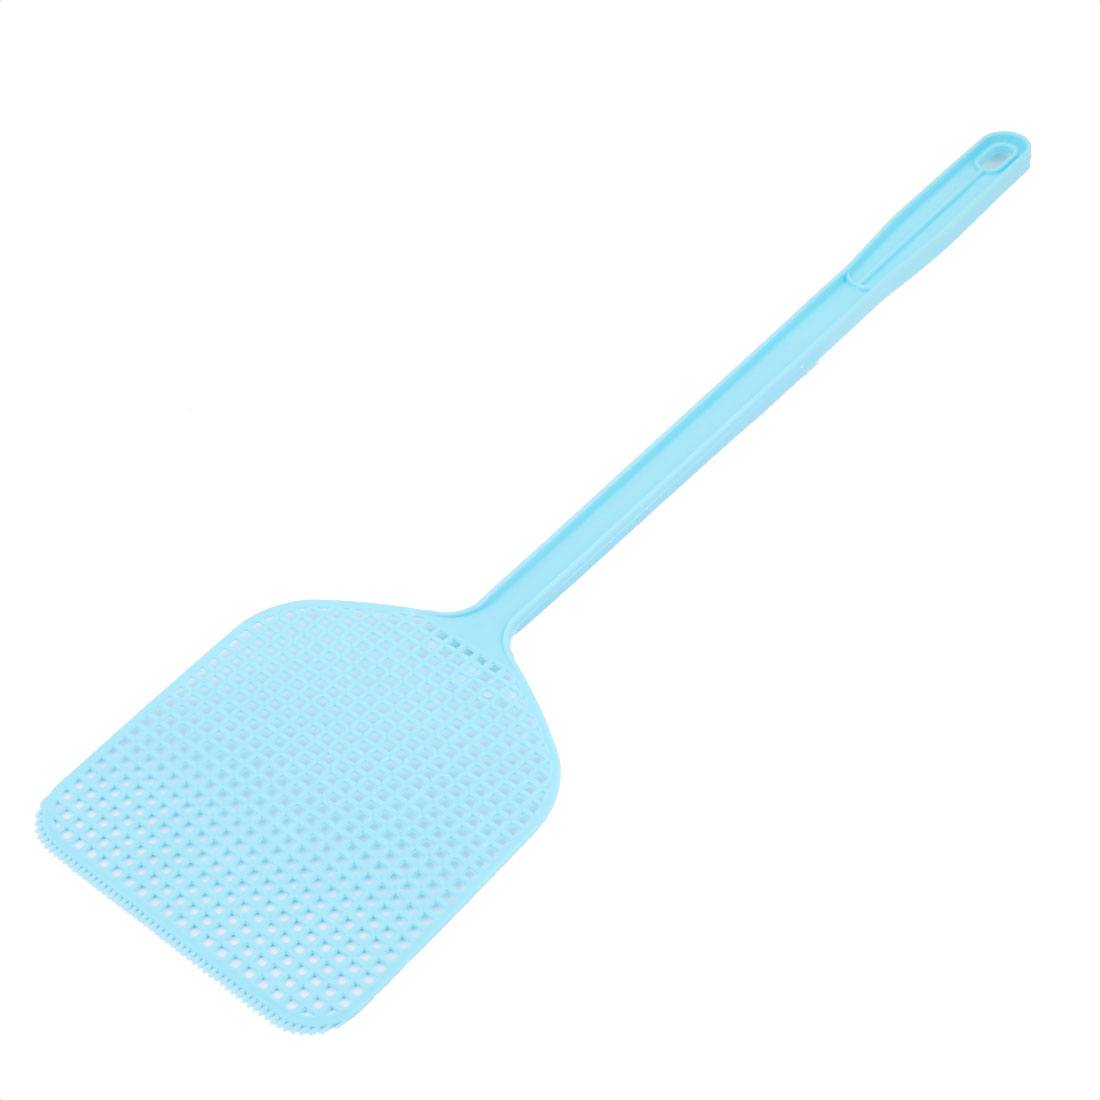 Plastic Fly Swatter Bug Mosquito Insect Wasps Killer Swat Catcher Blue